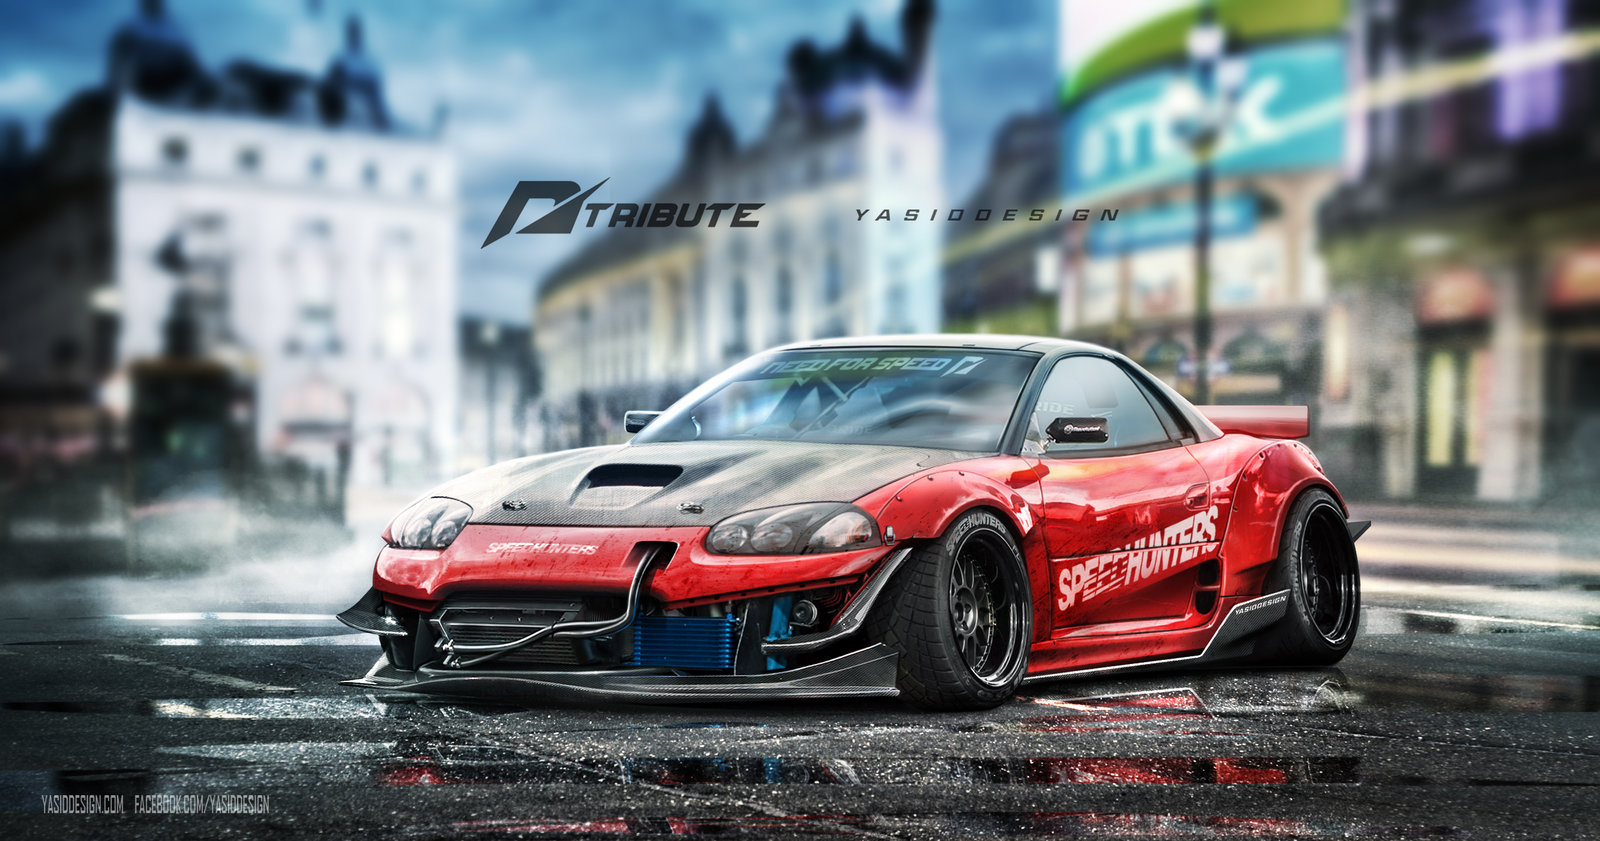 Speedhunters Mitsubishi 3000GT - Need for speed Tribute